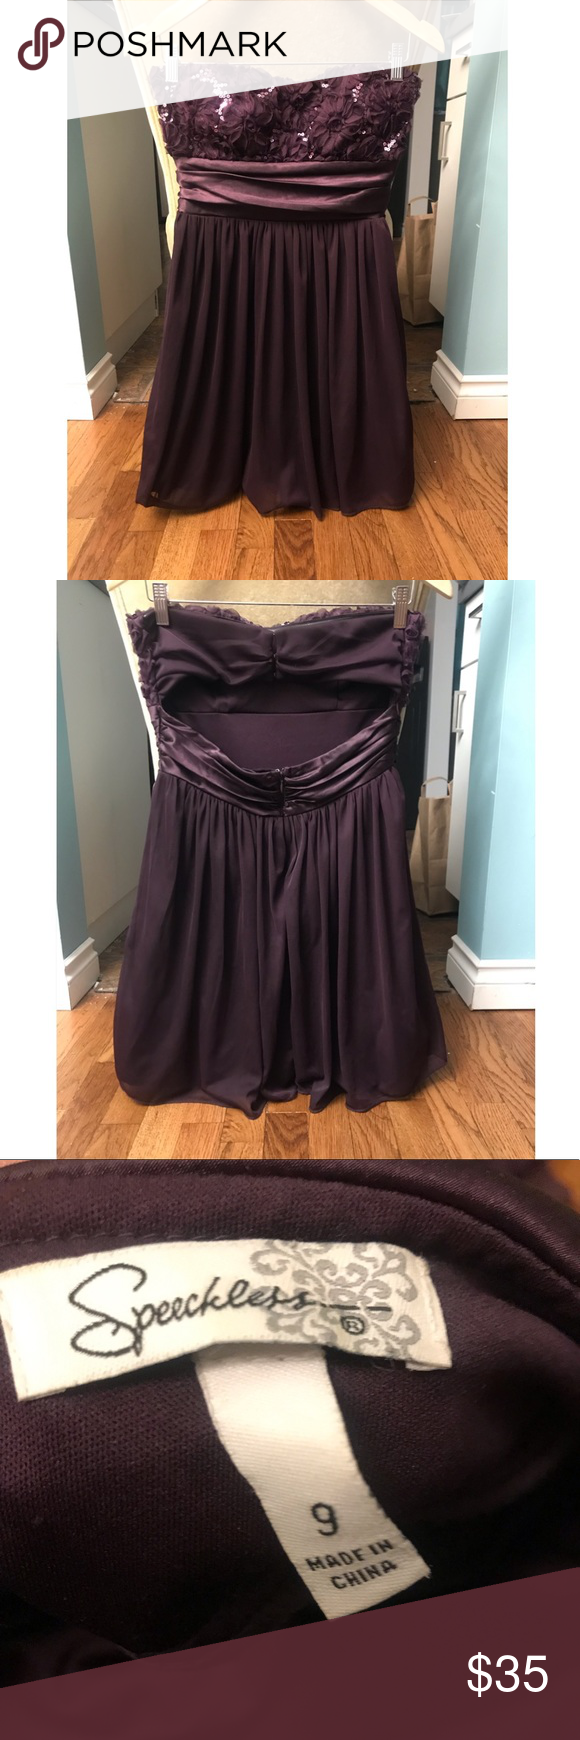 Dark Purple Cocktail Dress Purple short cocktail dress with flower and sequin detail. Clasps in perfect condition. Worn a couple times. Super cute! Comfortable, strappy, and somewhat backless. Speechless Dresses Strapless #backlesscocktaildress